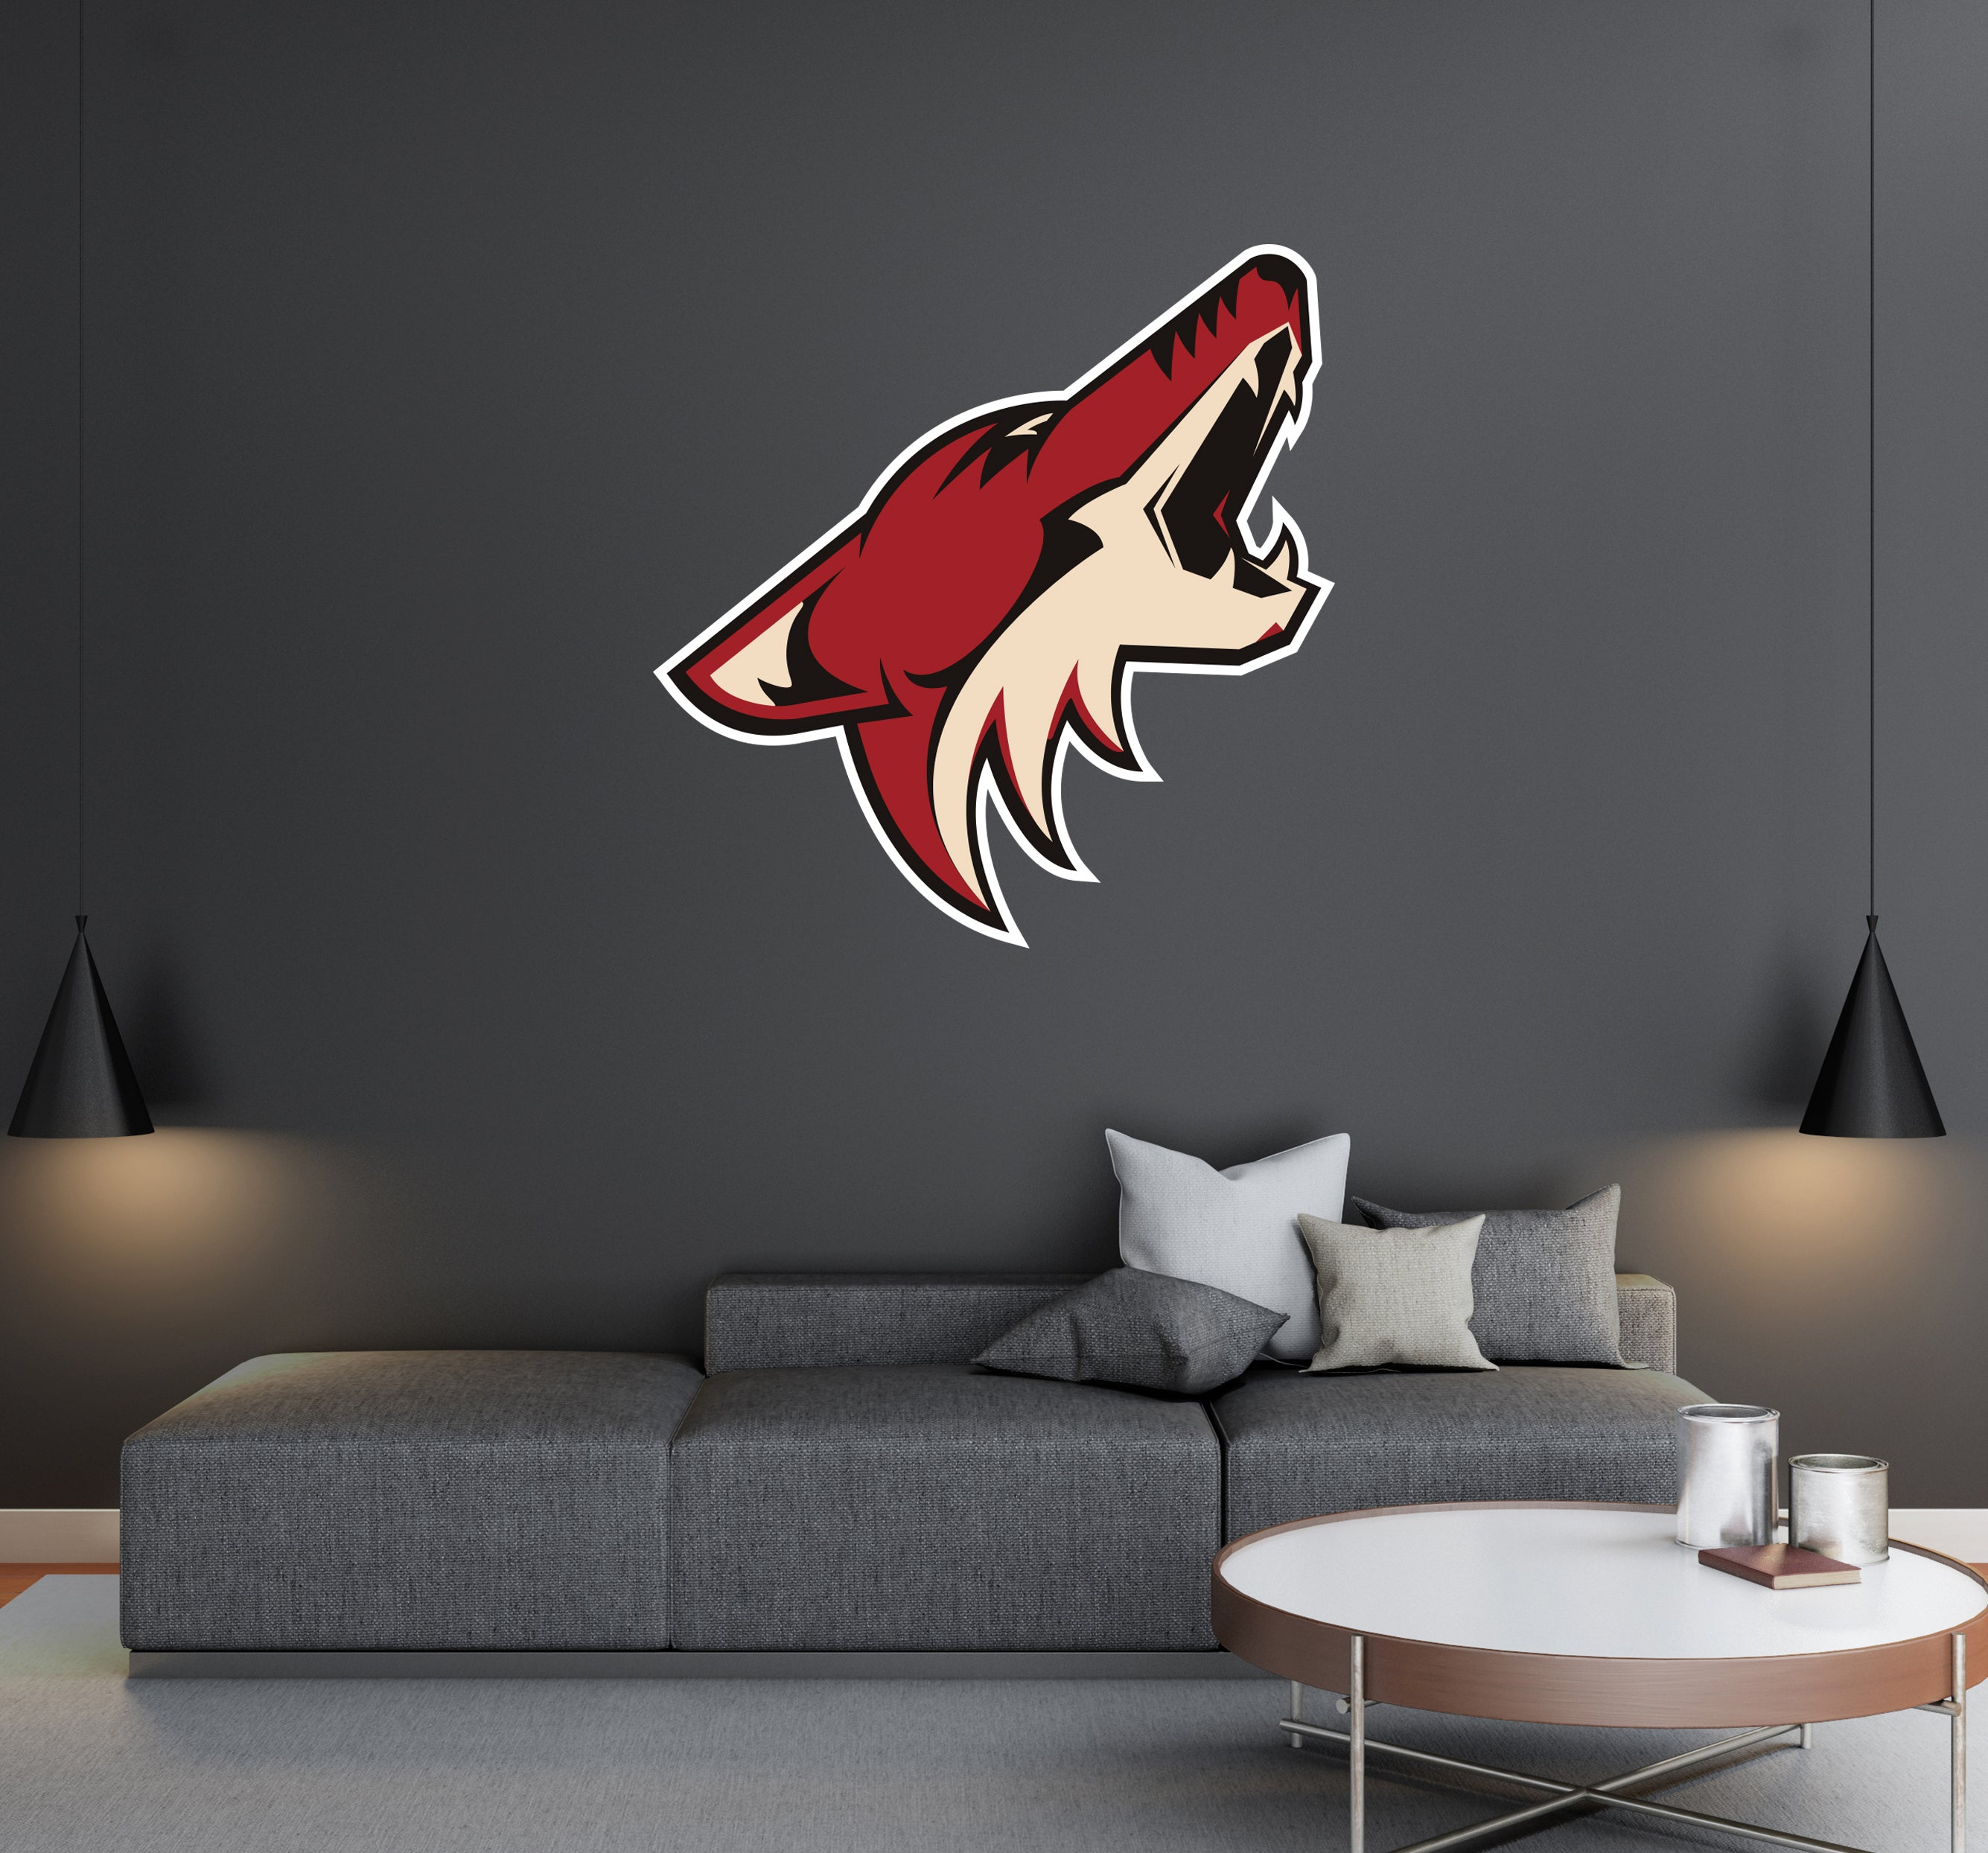 Arizona Coyotes - NHL Hockey Team Logo - Wall Decal Removable & Reusable For Home Bedroom